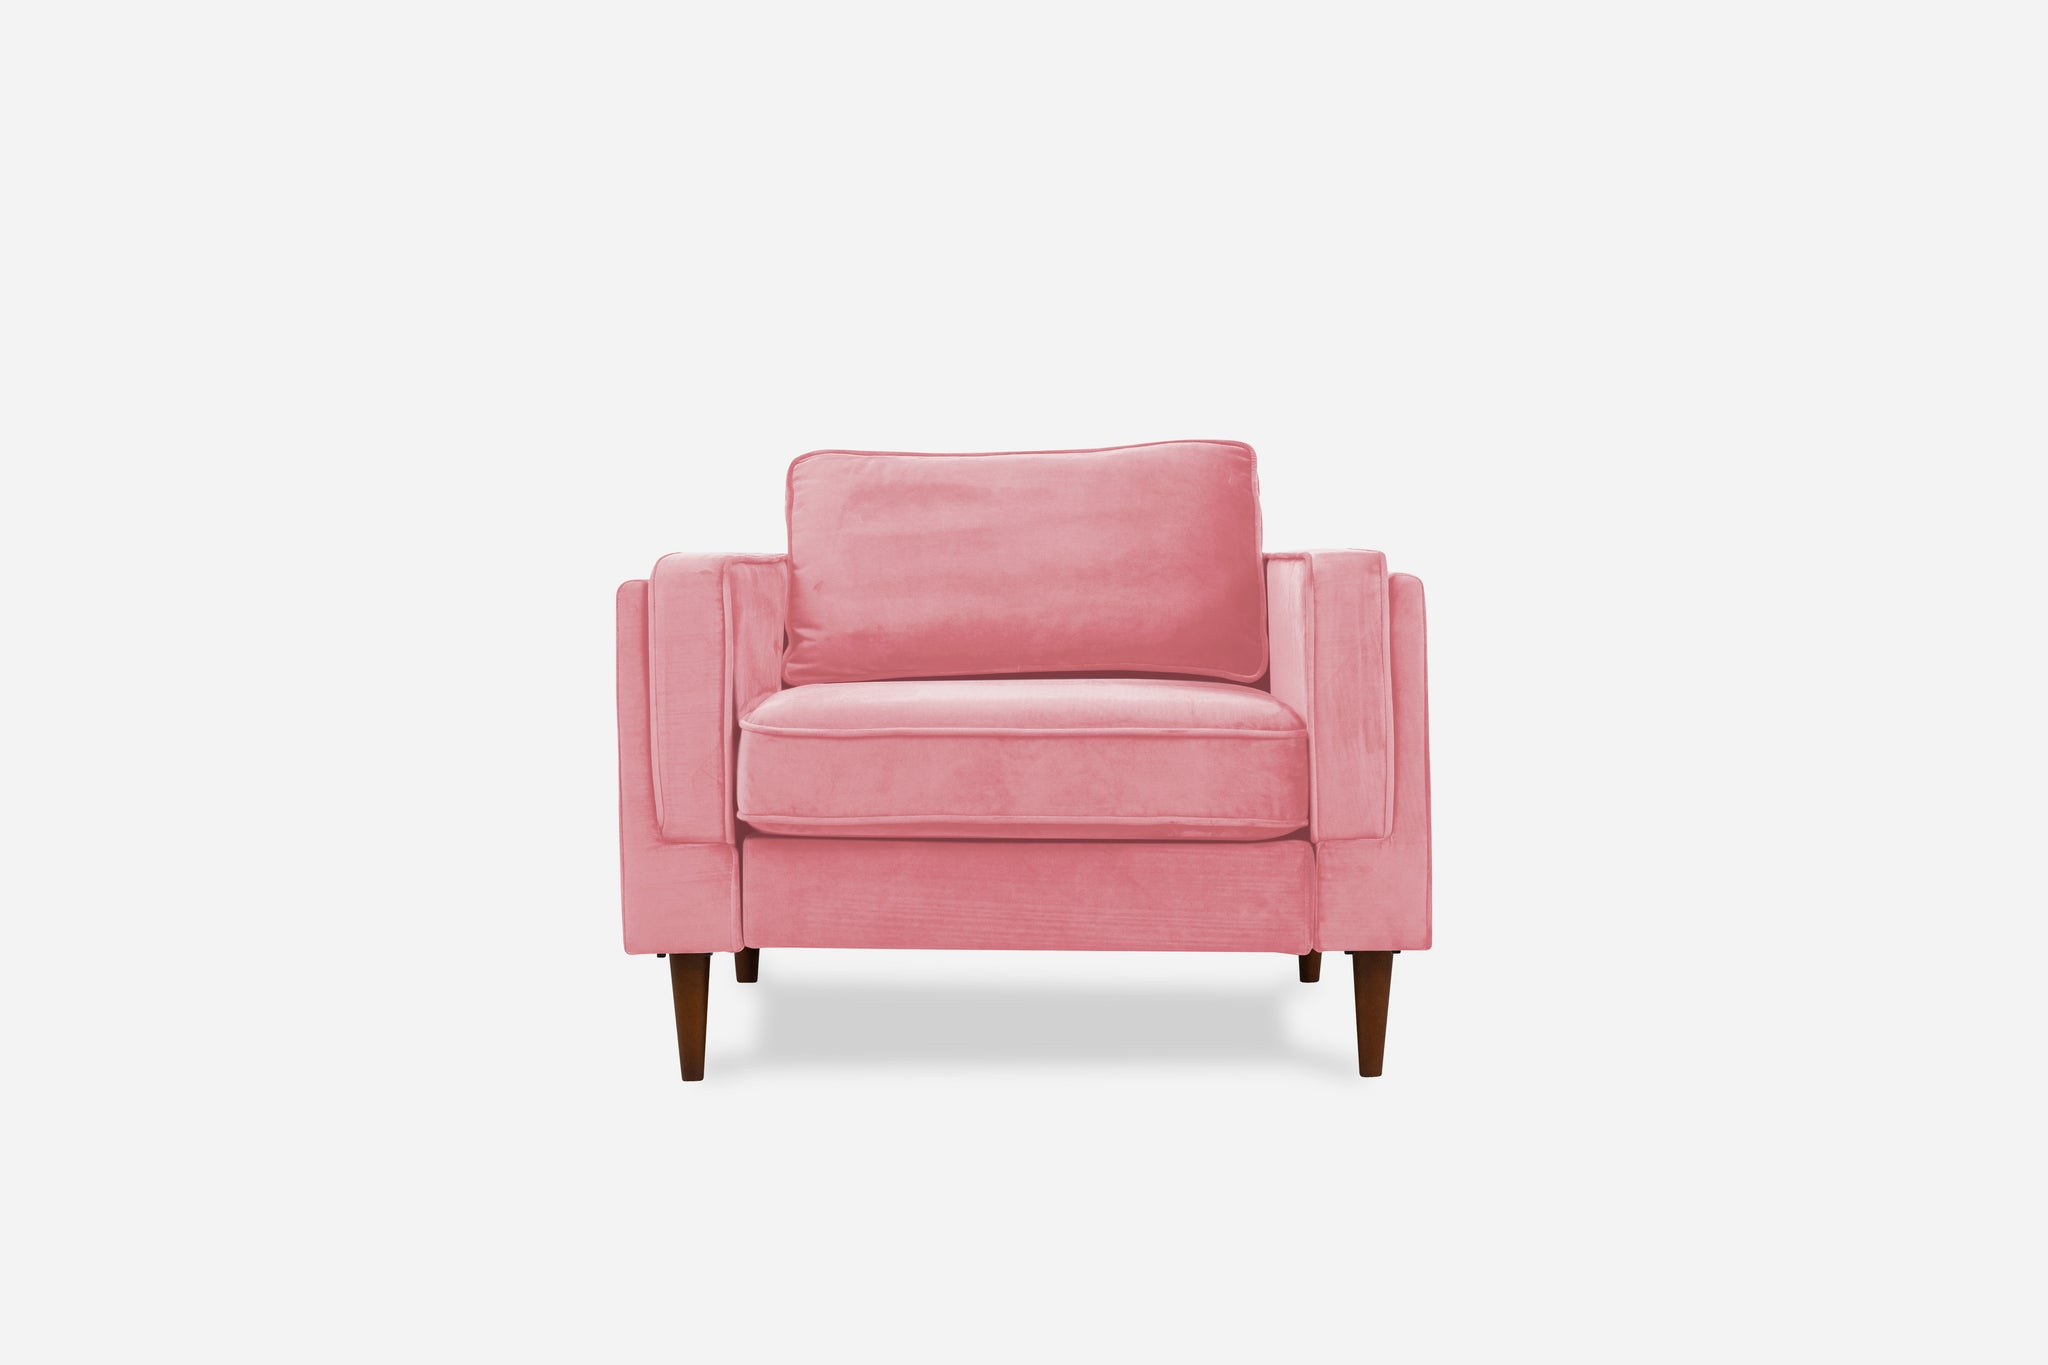 Blush Pink Velvet, Walnut Legs